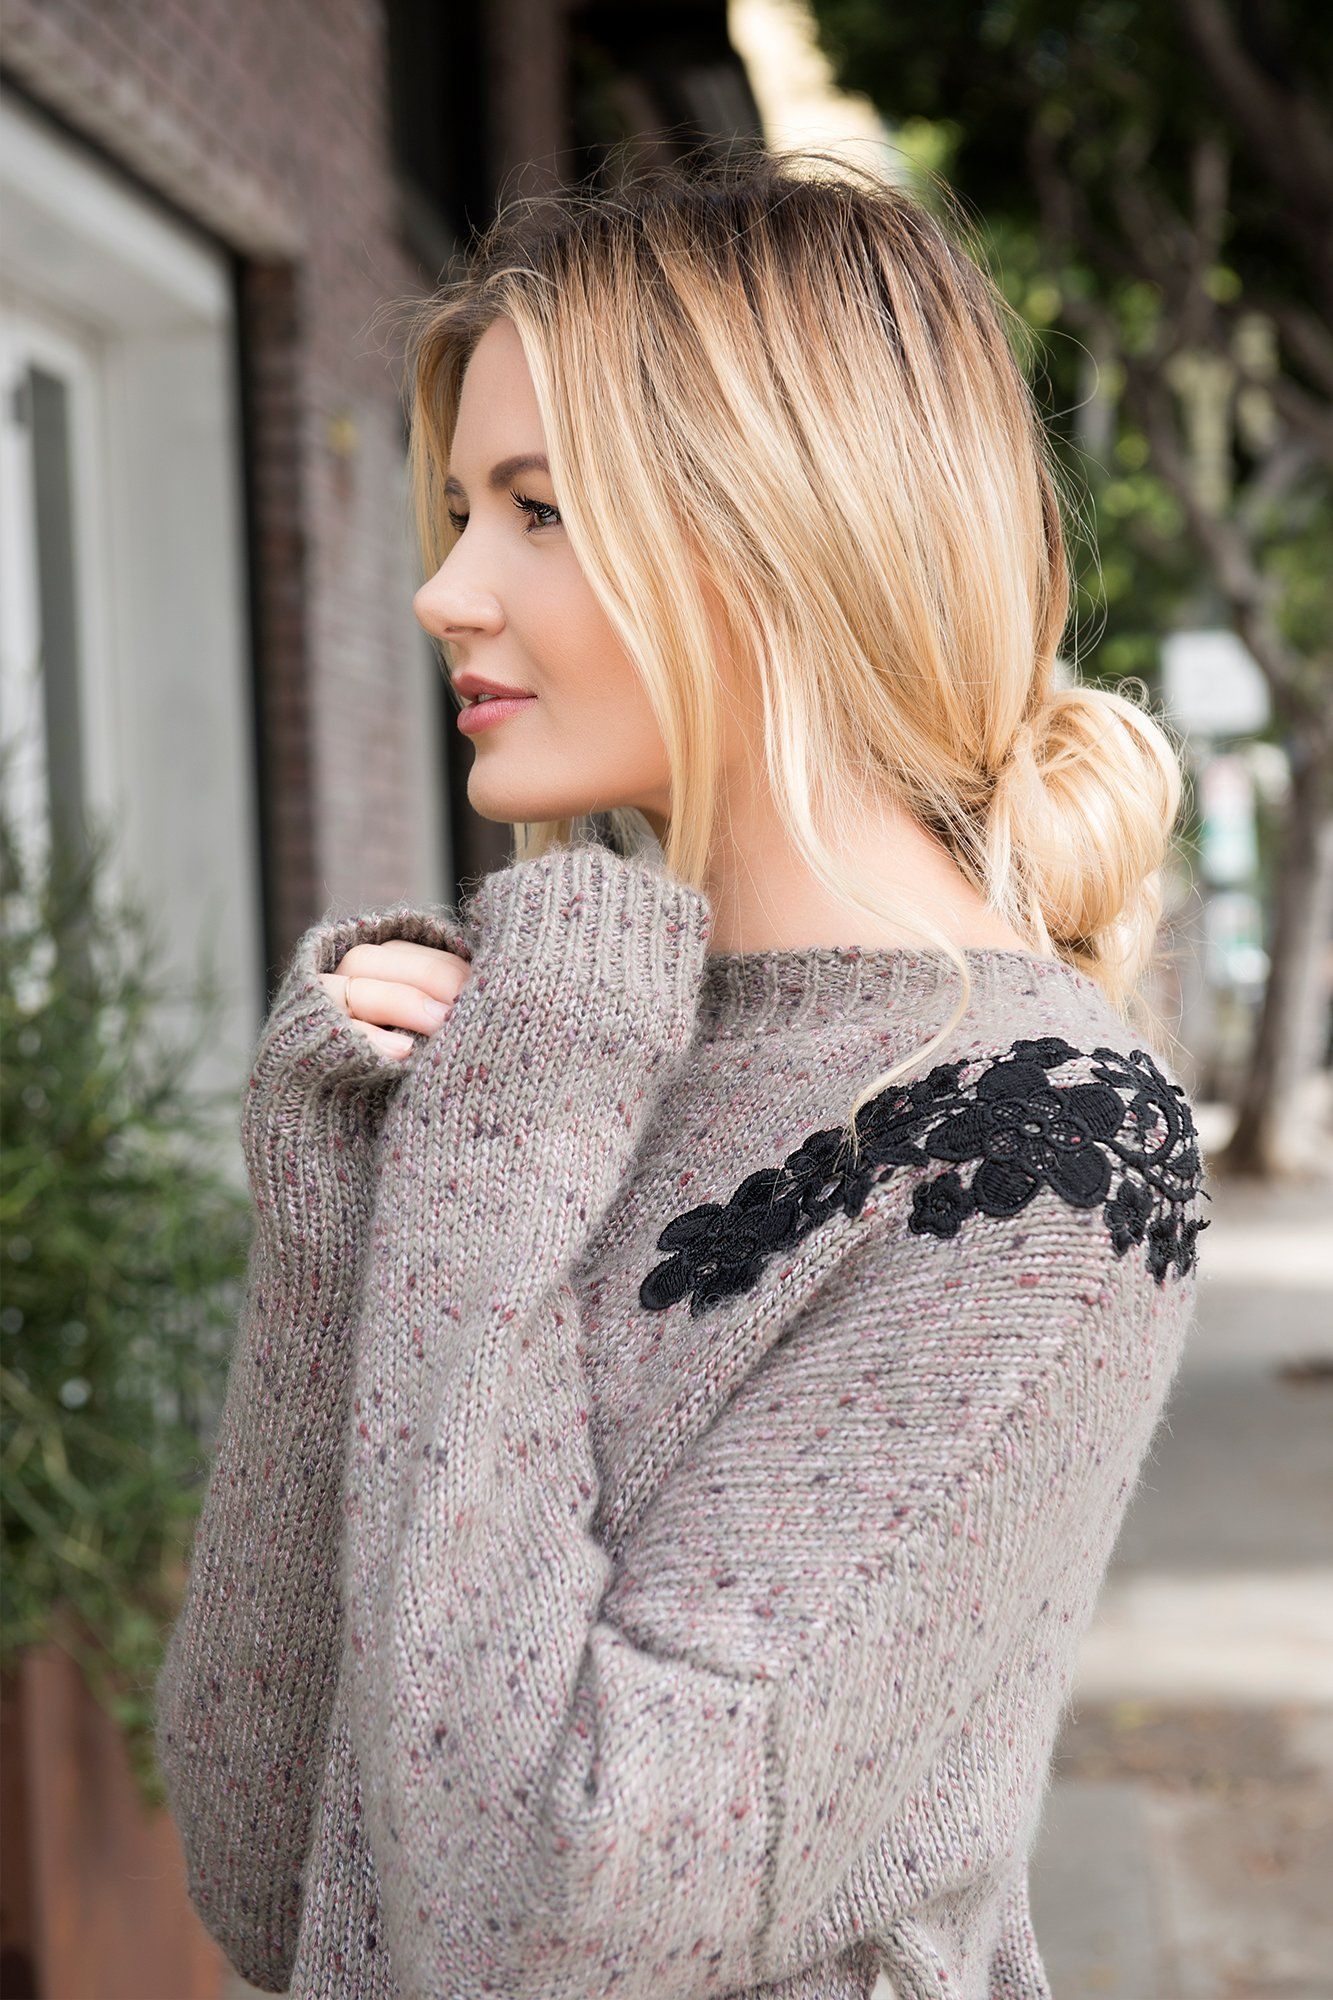 Tanya Marbled Sweater